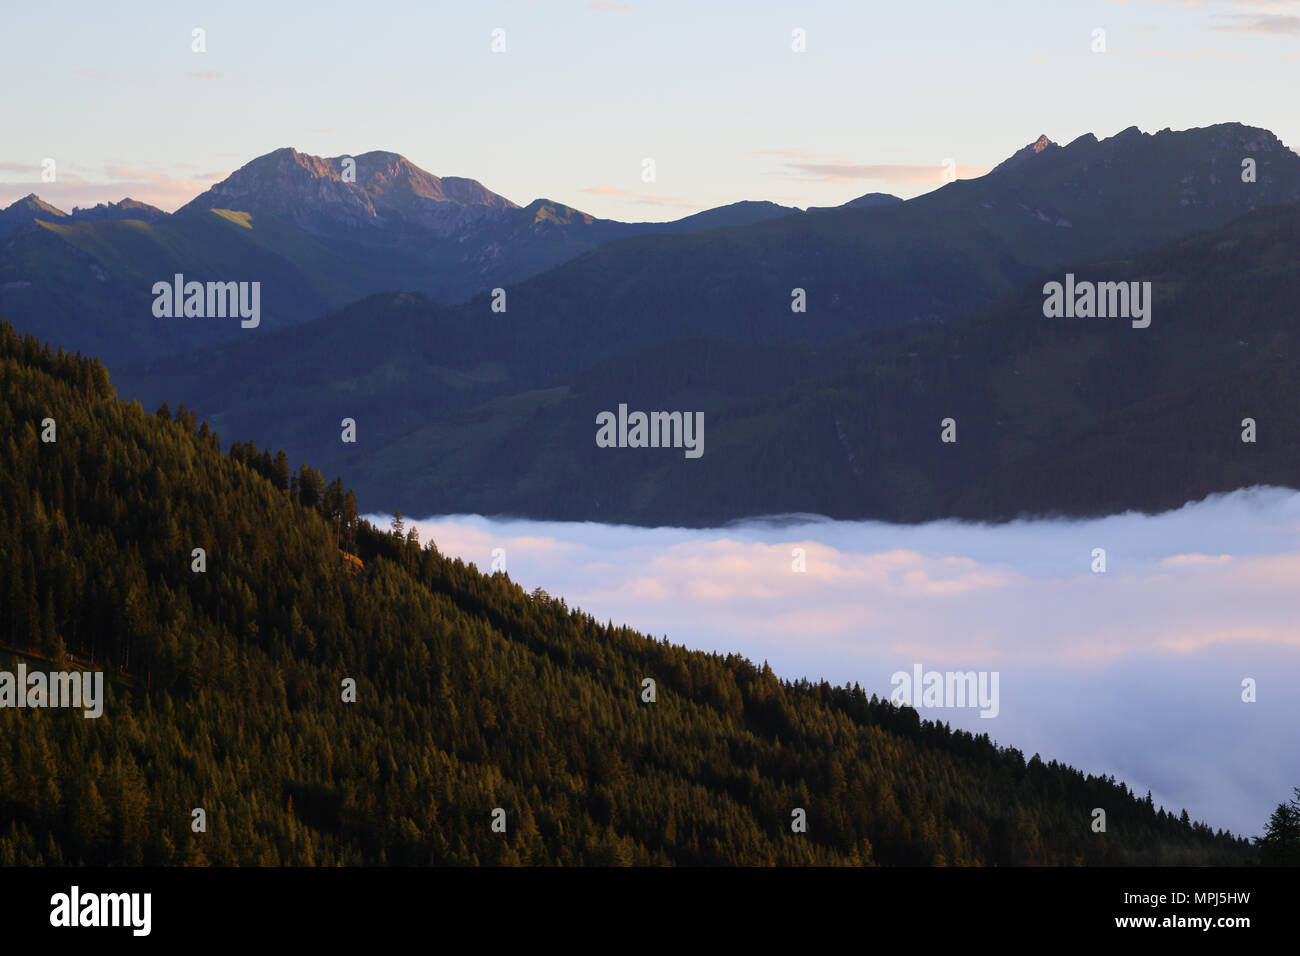 alpine-peaks-and-a-cover-of-clouds-in-th